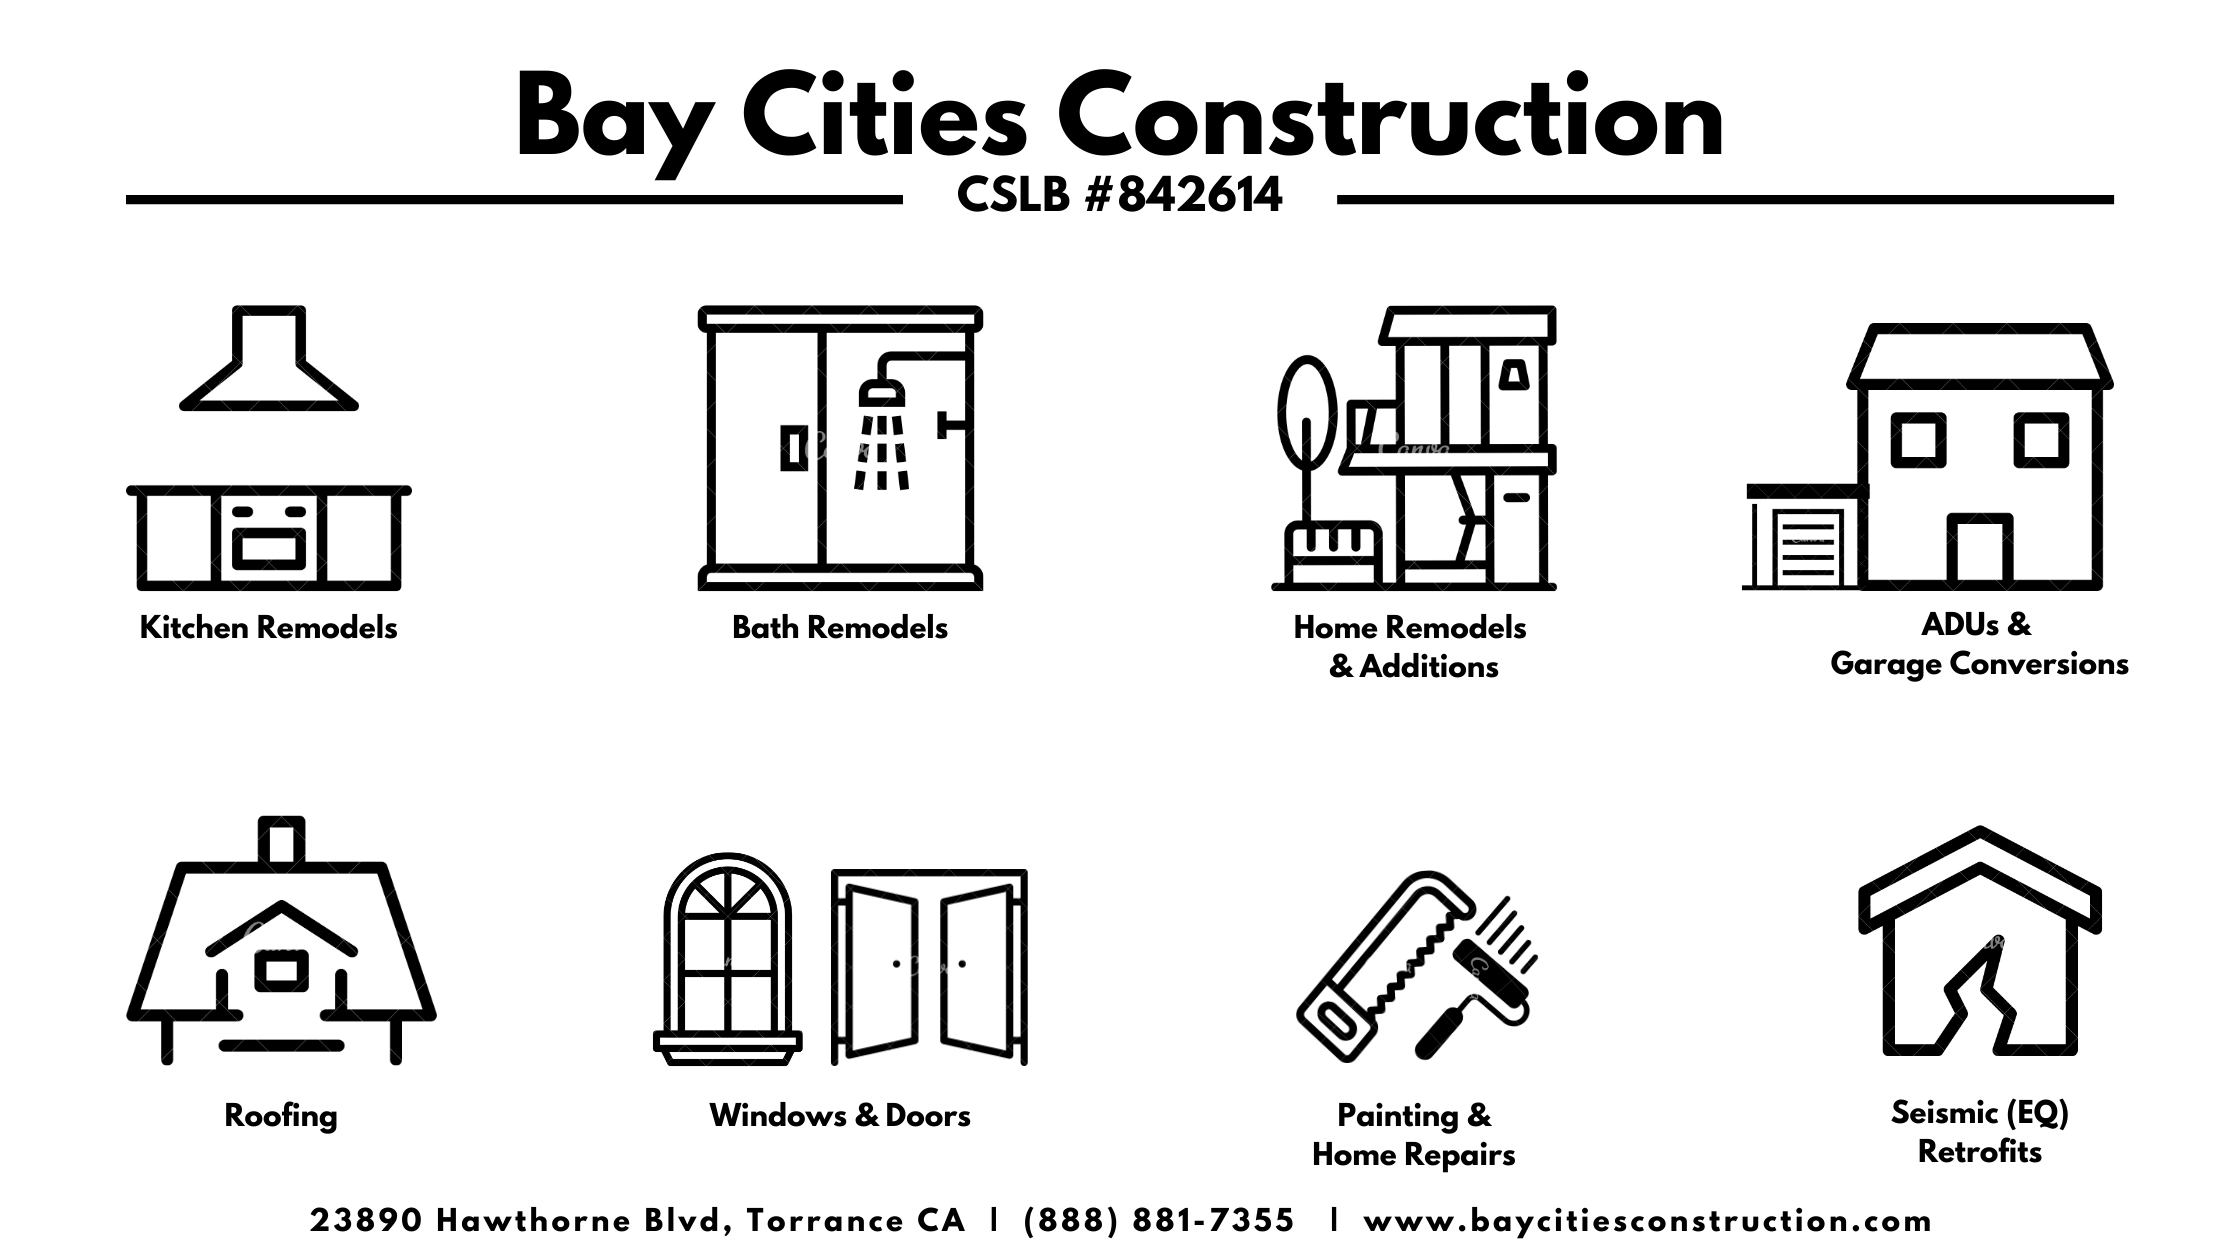 bay cities construction - general contractor near me - kitchen bath remodel - addition - adu - roof - windows - painting - earthquake retrofit